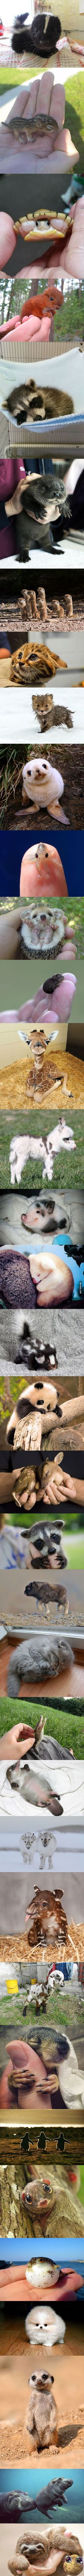 Non sono riuscita a resistere...*_* [Look at all these baby animals... - Imgur]